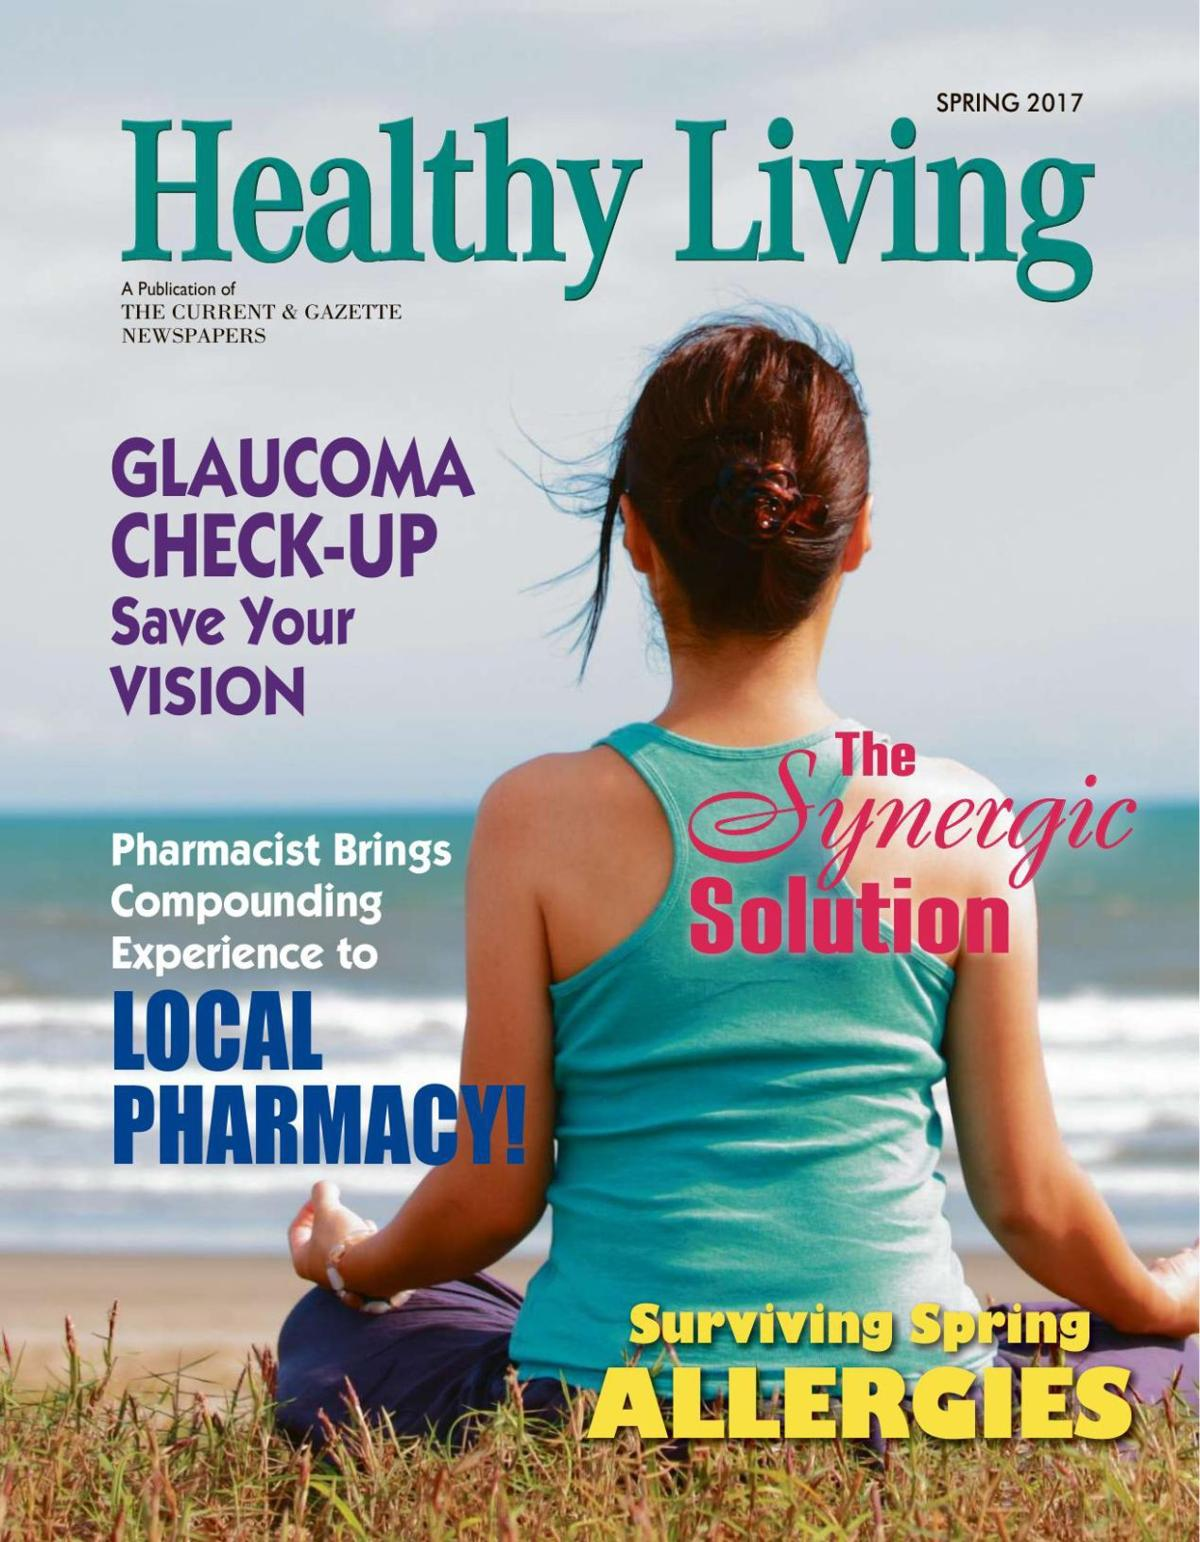 Healthy Living Spring 2017